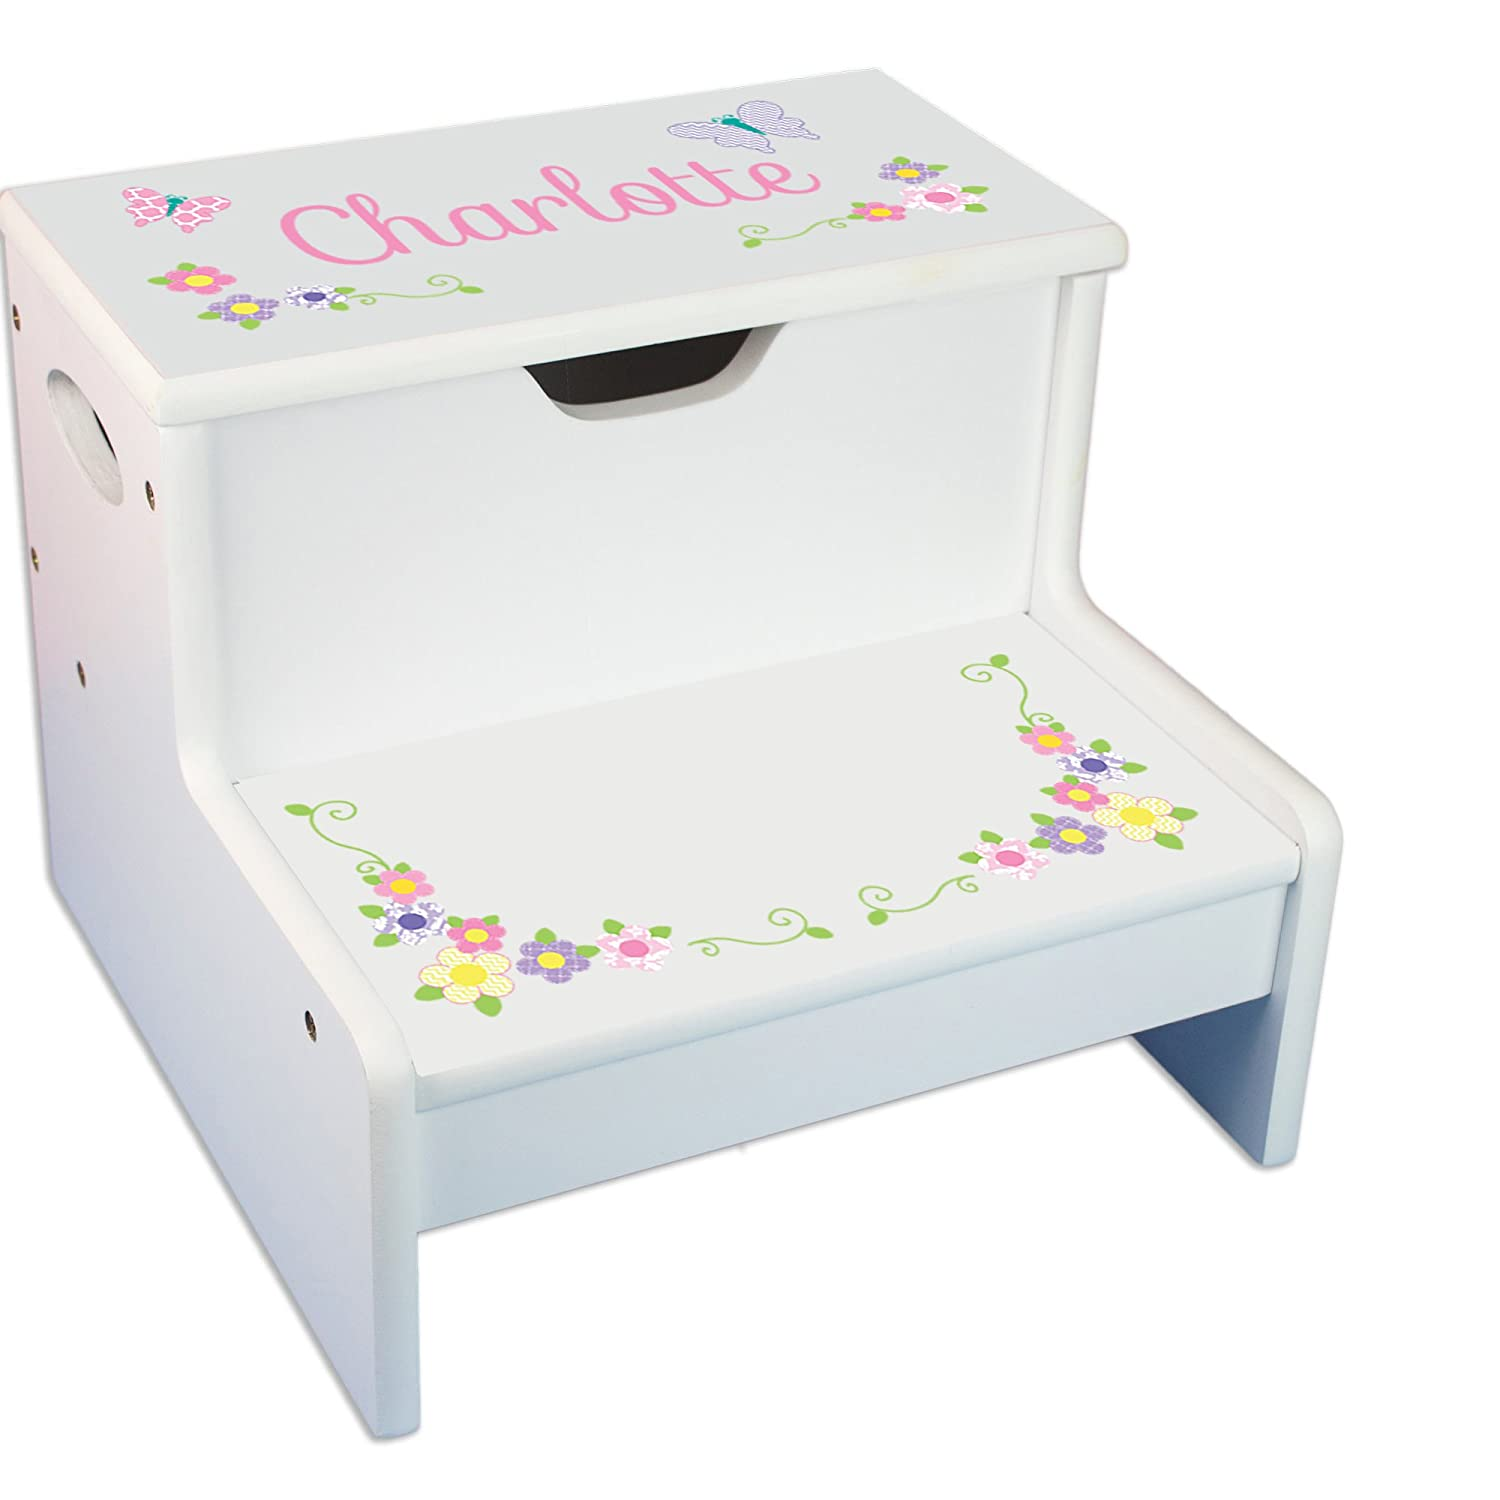 Personalized Pastel Butterfly Garland White Childrens Step Stool with Storage MyBambino step-whi-304b